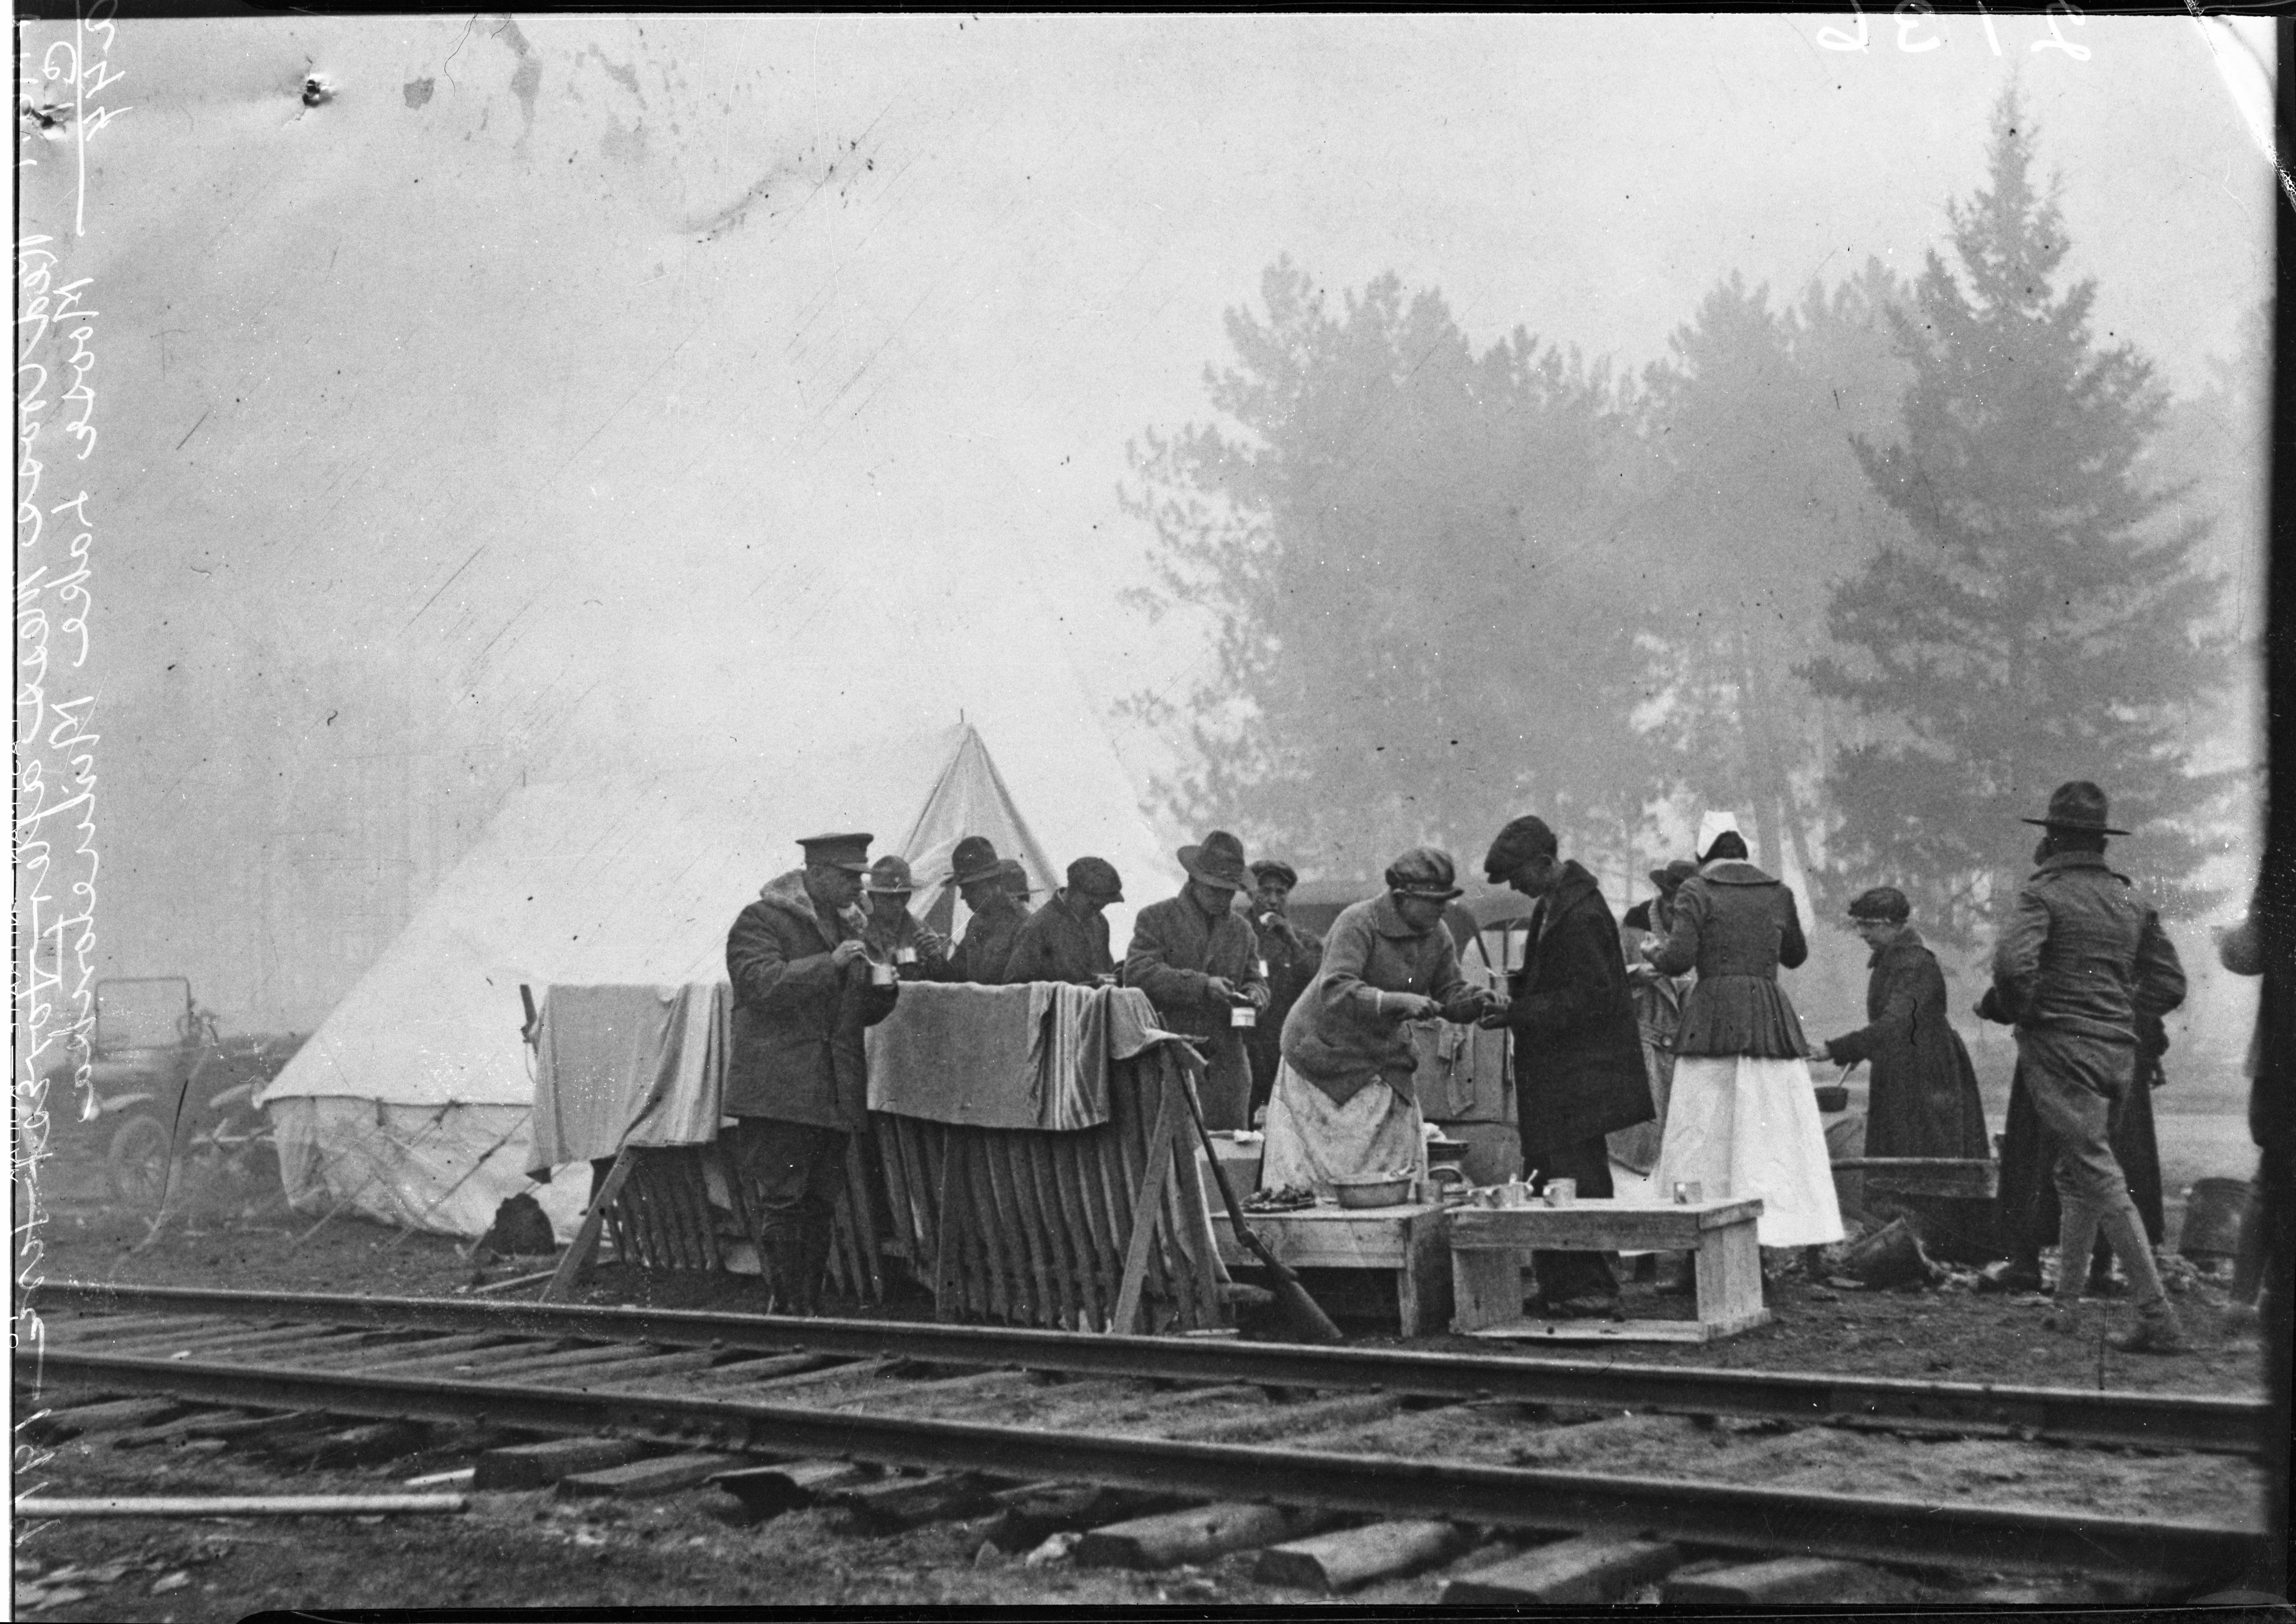 The Red Cross served meals to fire survivors in Minnesota. Photos courtesy of the Minnesota Historical Society